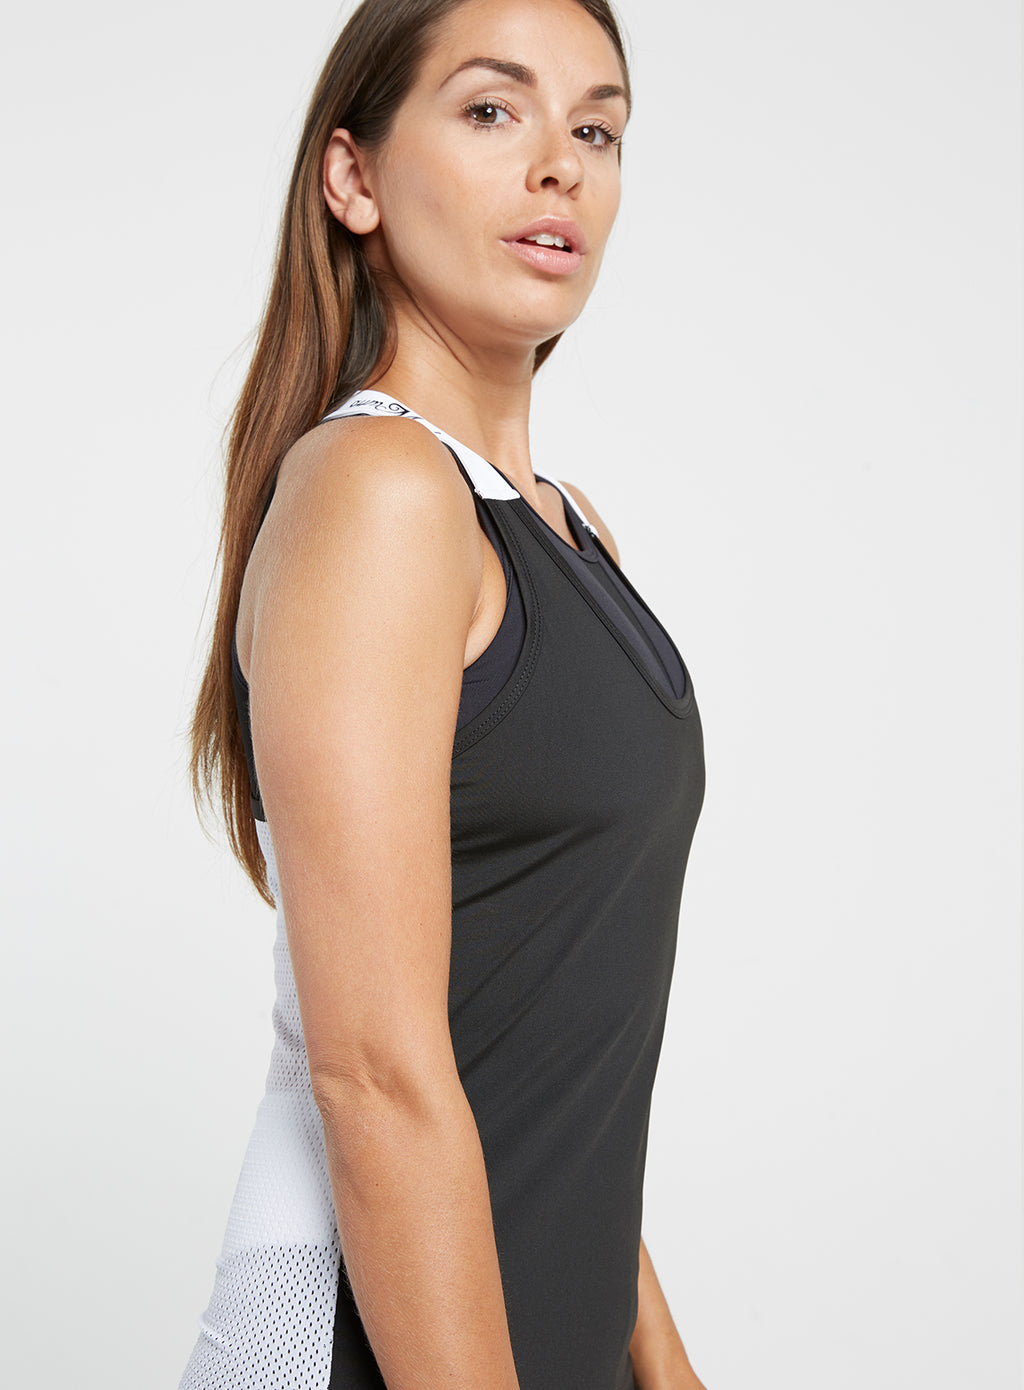 Gym Monkee - Ladies Black and White Strap Top RIGHT